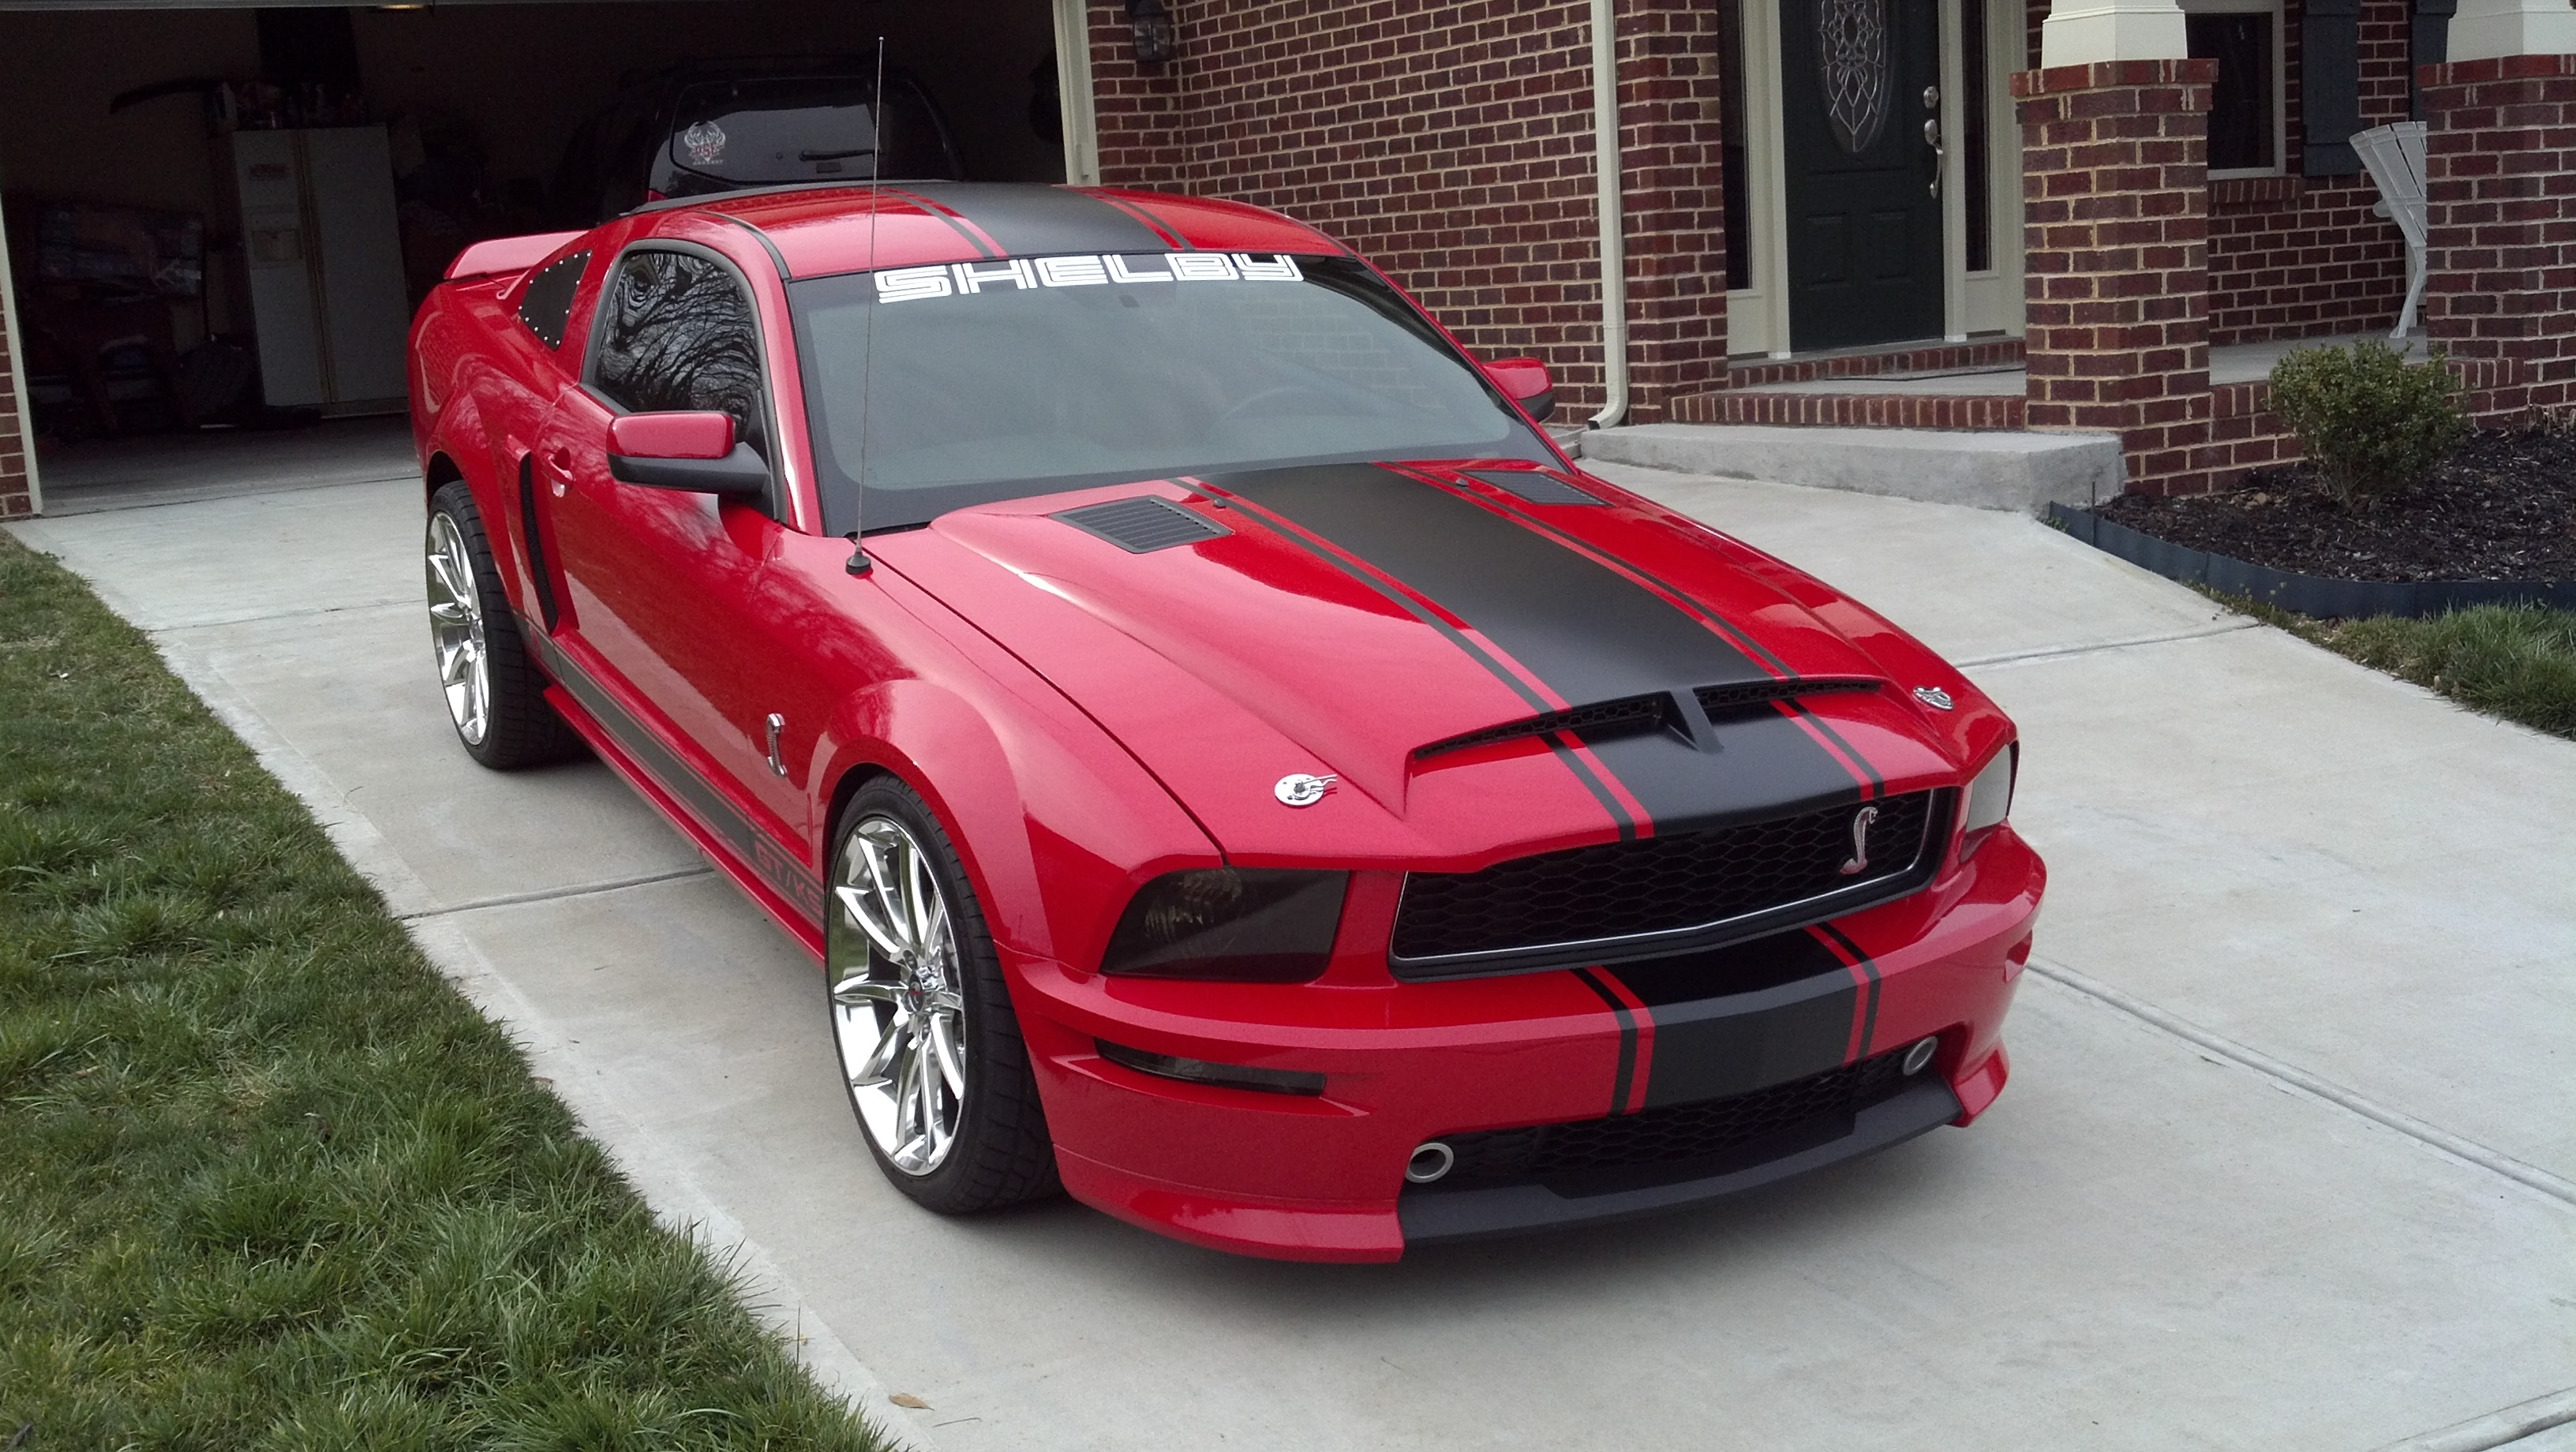 Mowat07 2009 Ford Mustang